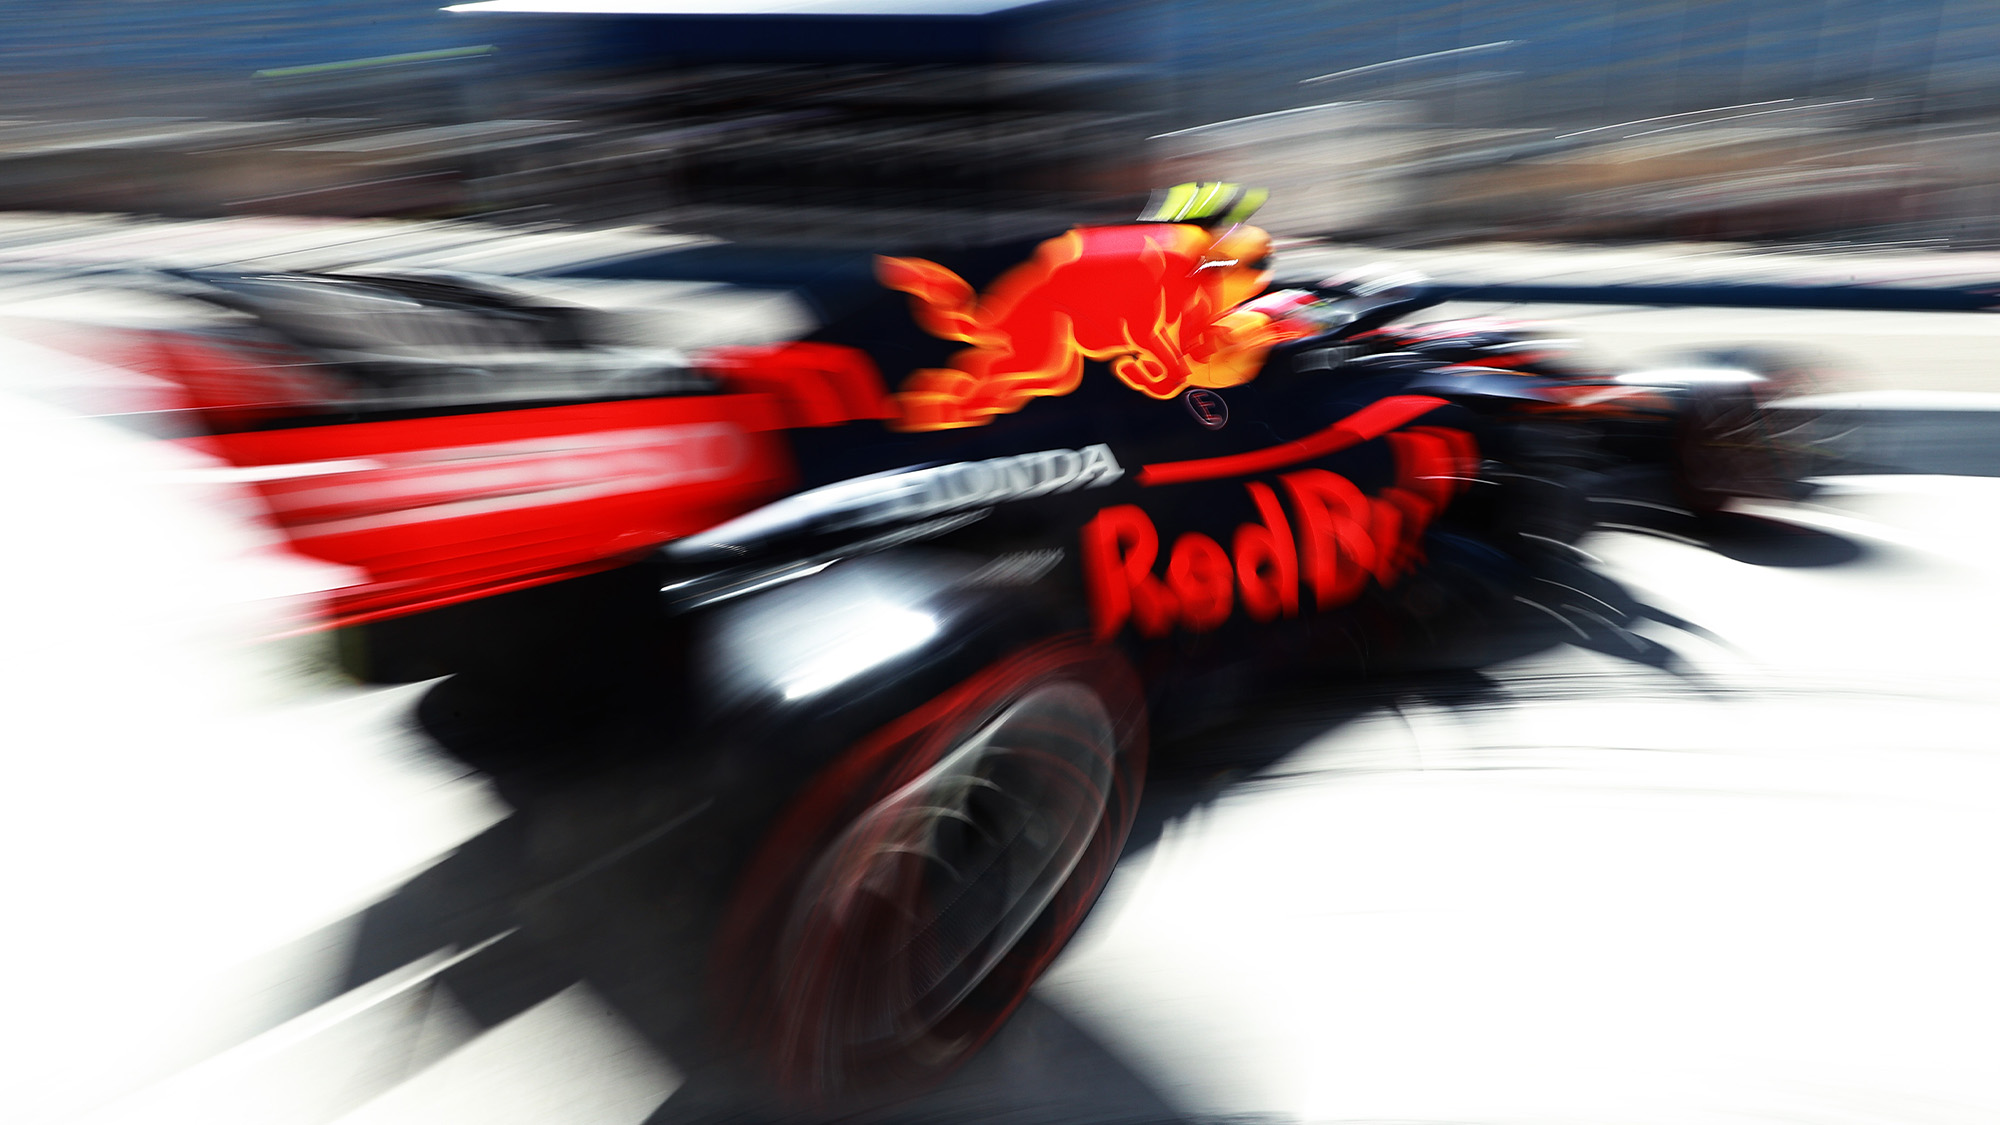 Blurred picture of Sergio Perez Red Bull at the 2021 Bahrain Grand Prix